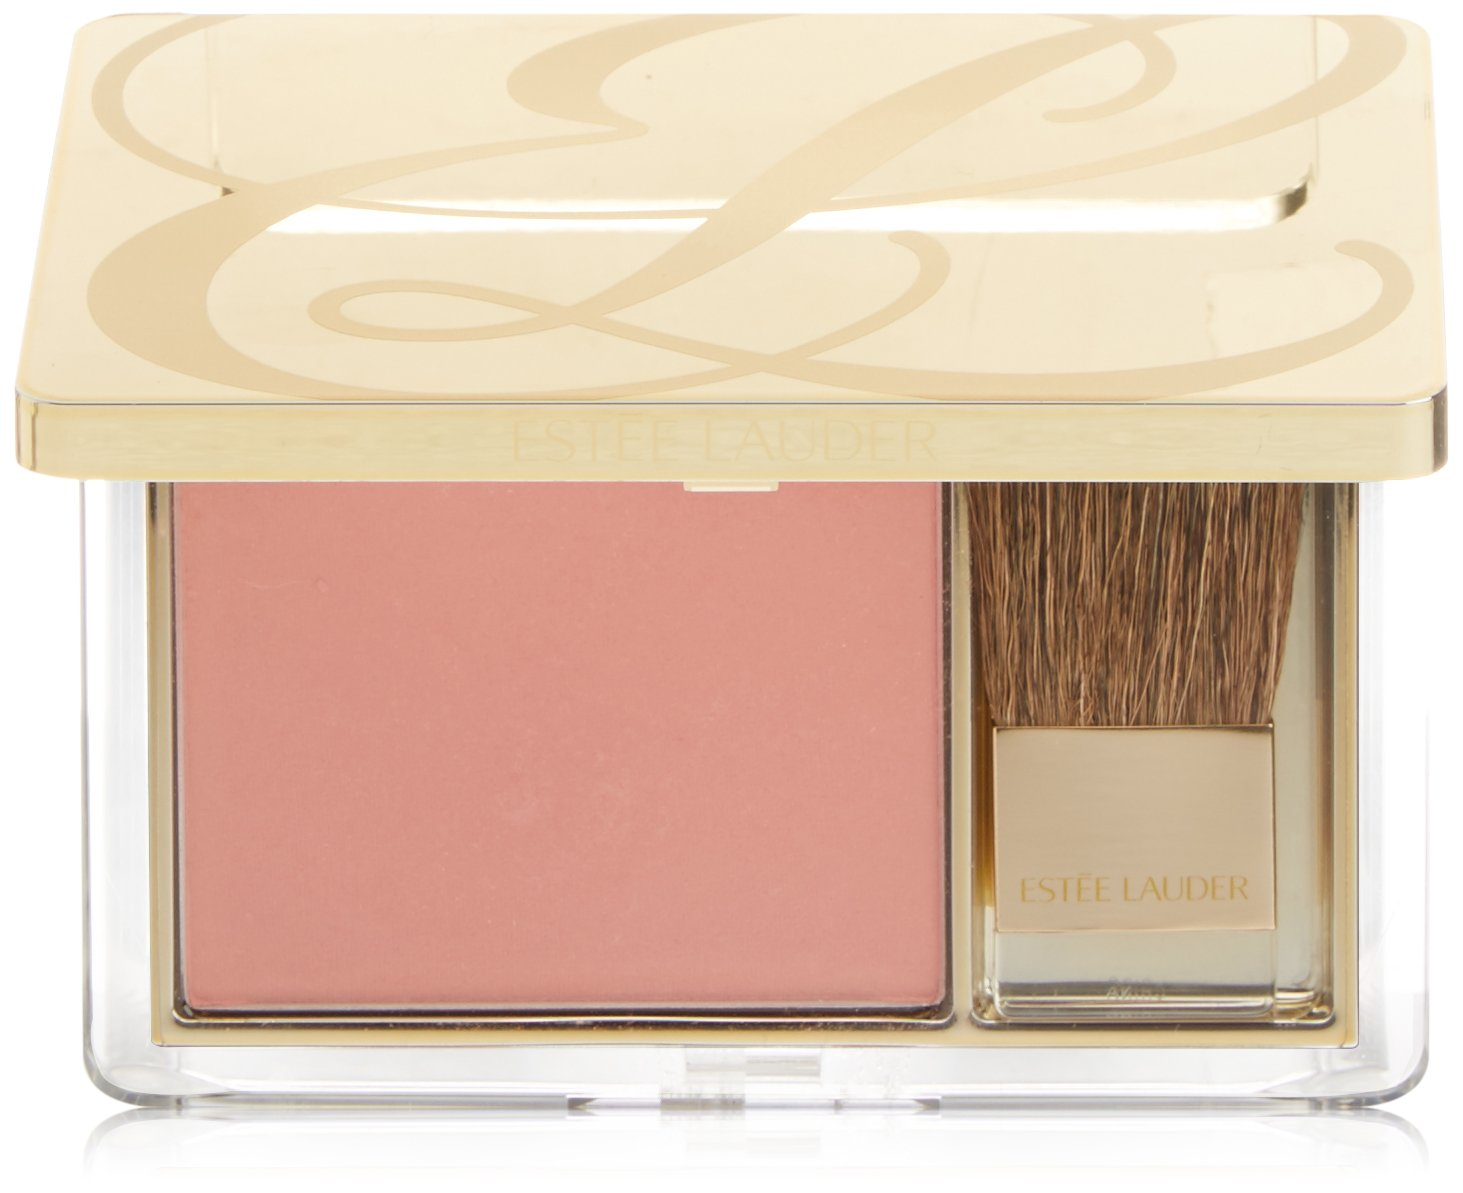 Estee Lauder Pure Color No. 08 Peach Passion for Women Blush, Fresh Sheer, Shimmer, 0.24 Ounce